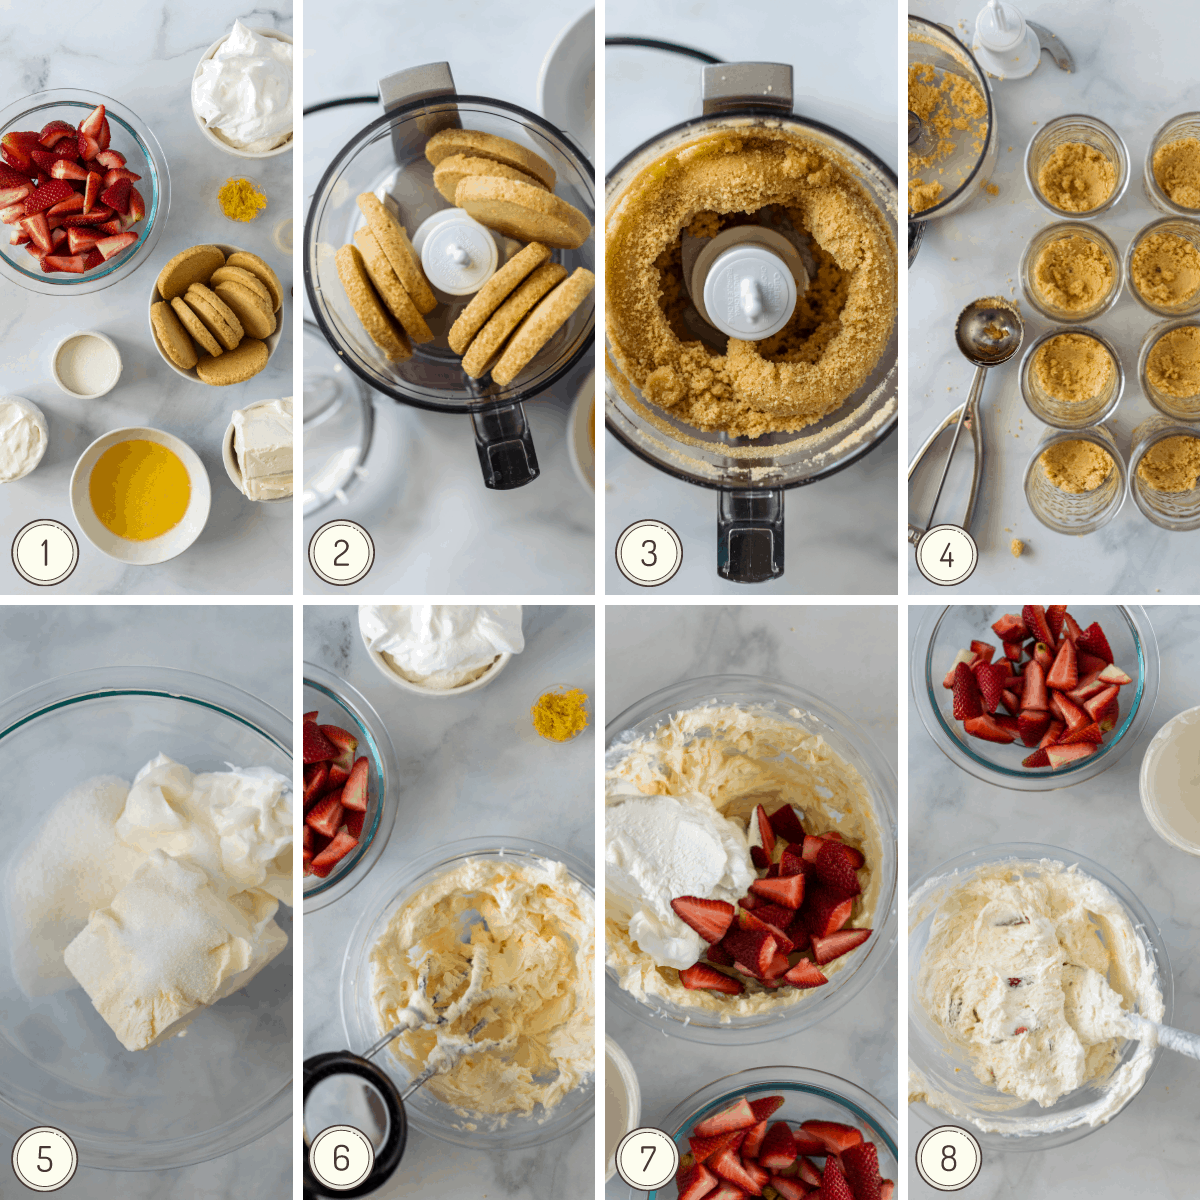 step by step collage showing how to make no-bake strawberry cheesecake layered into mason jars.